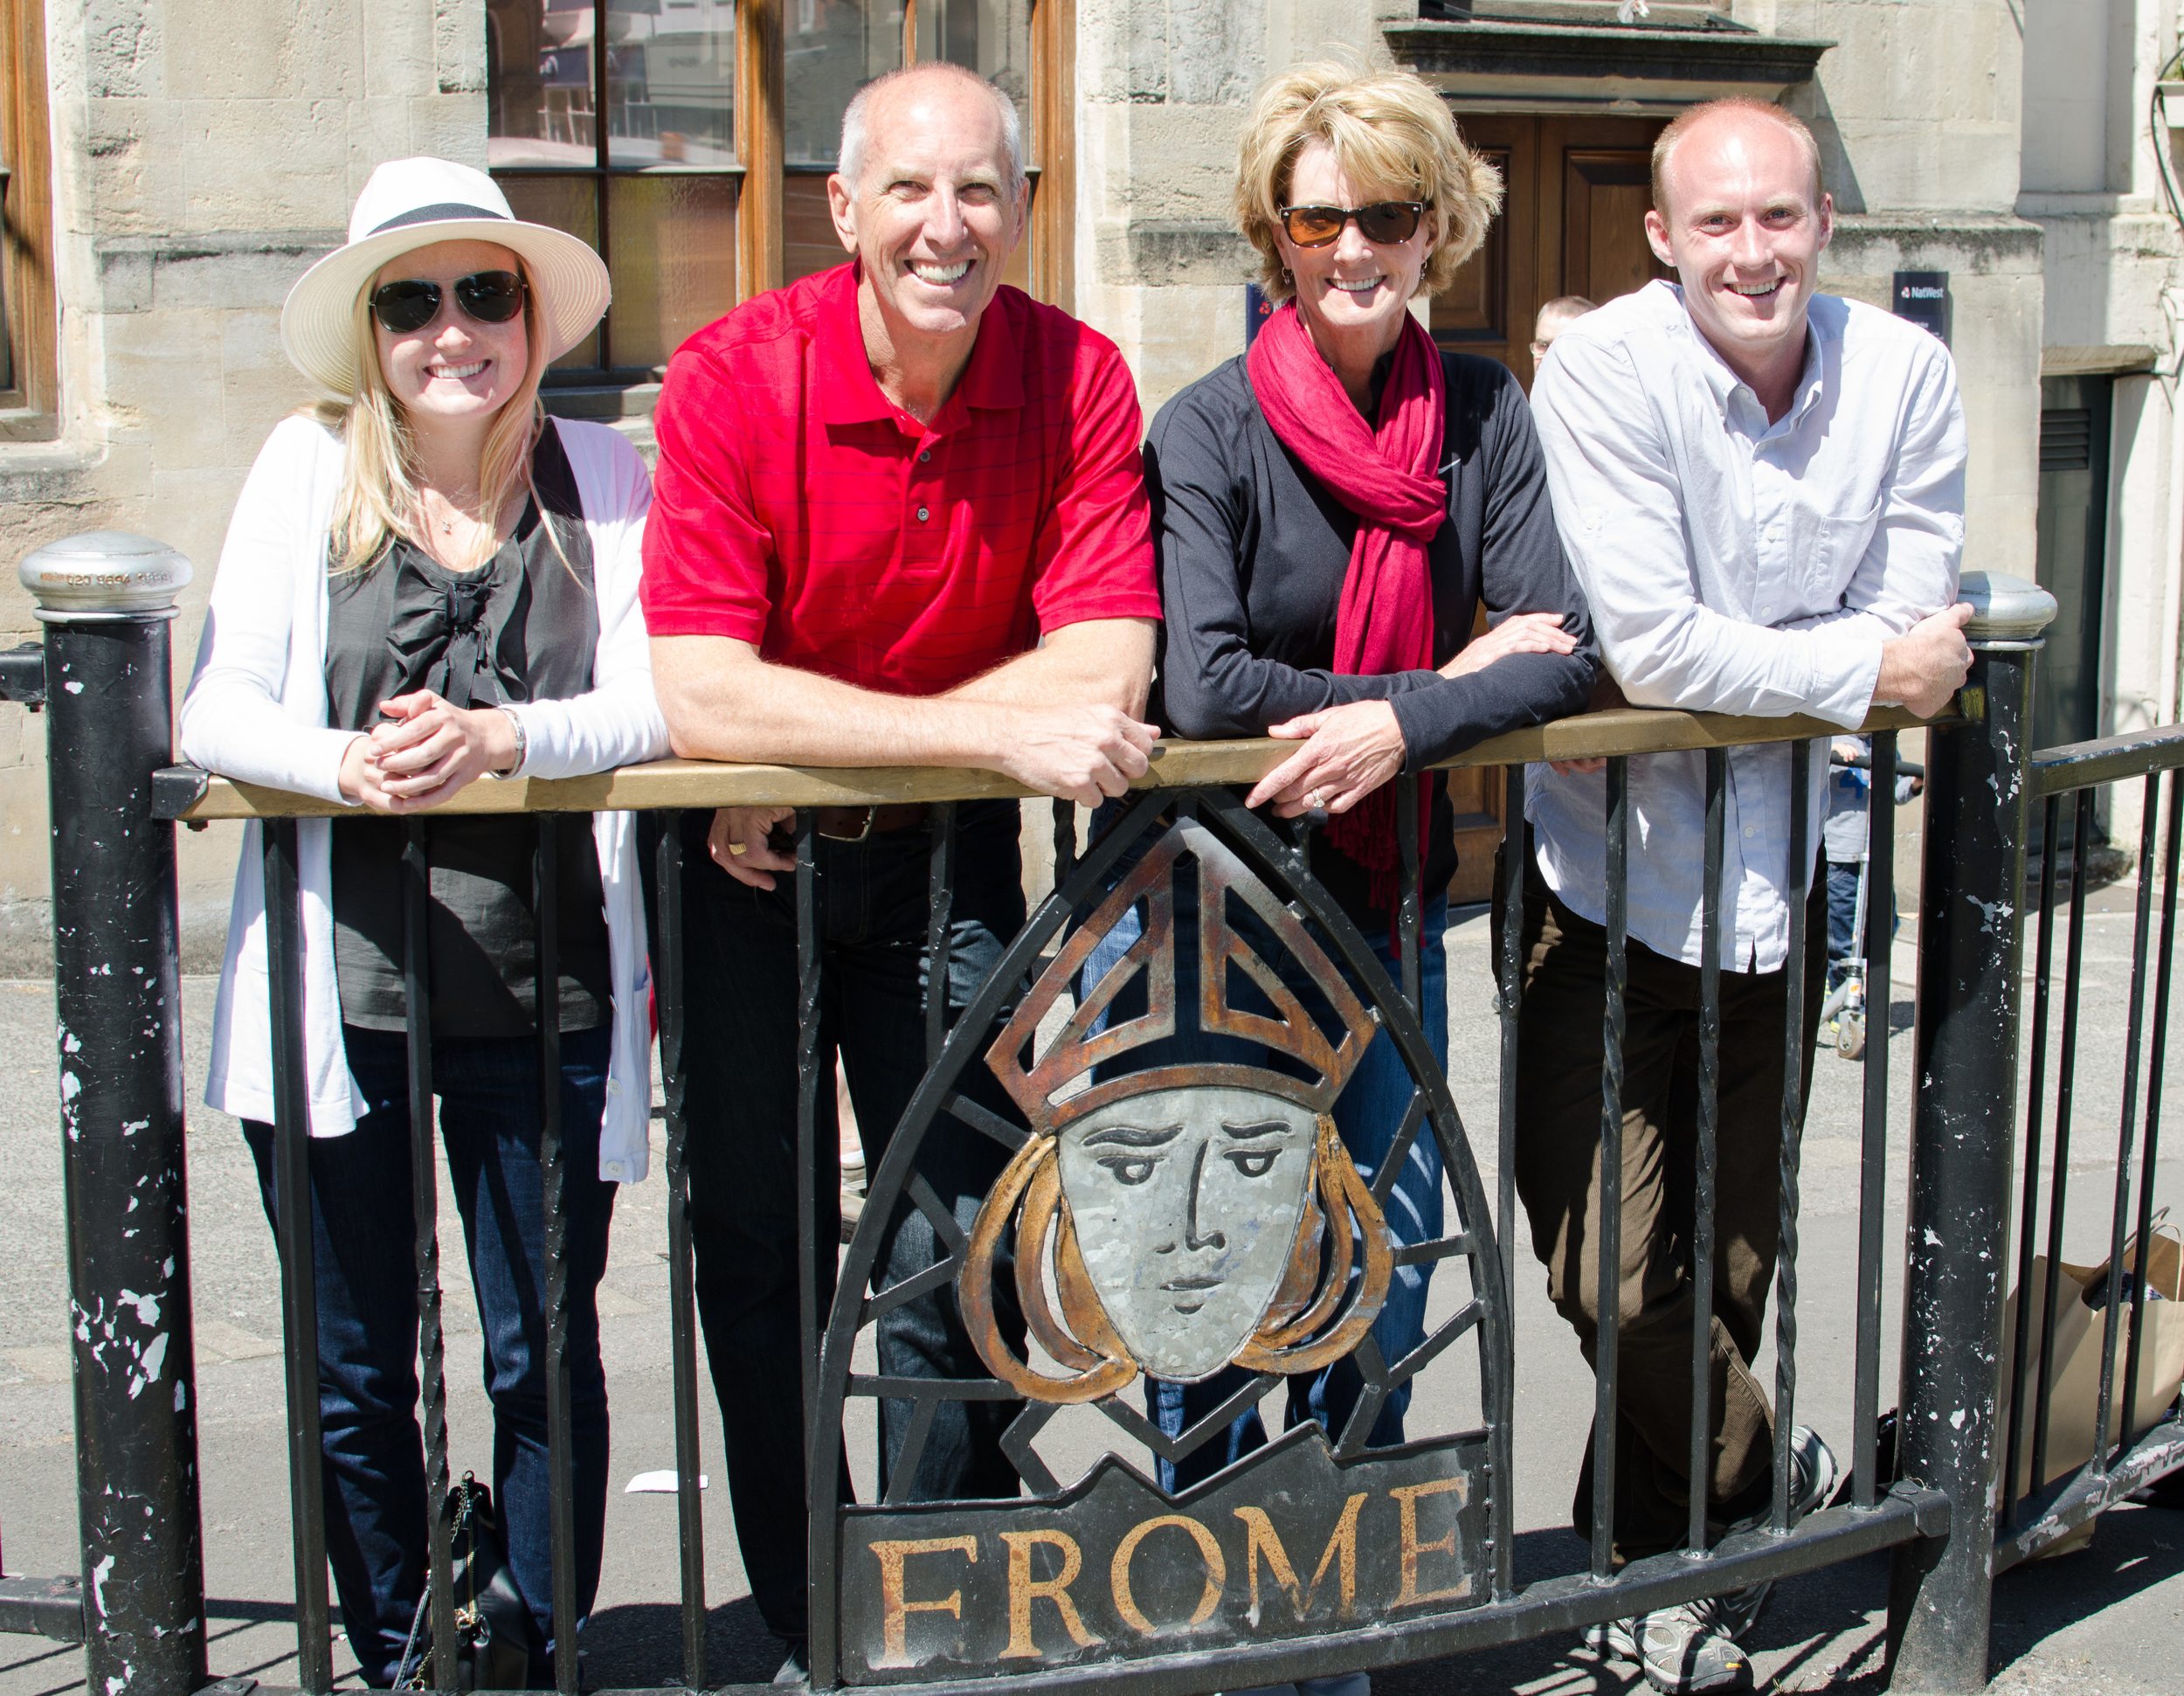 Fromes in Frome!